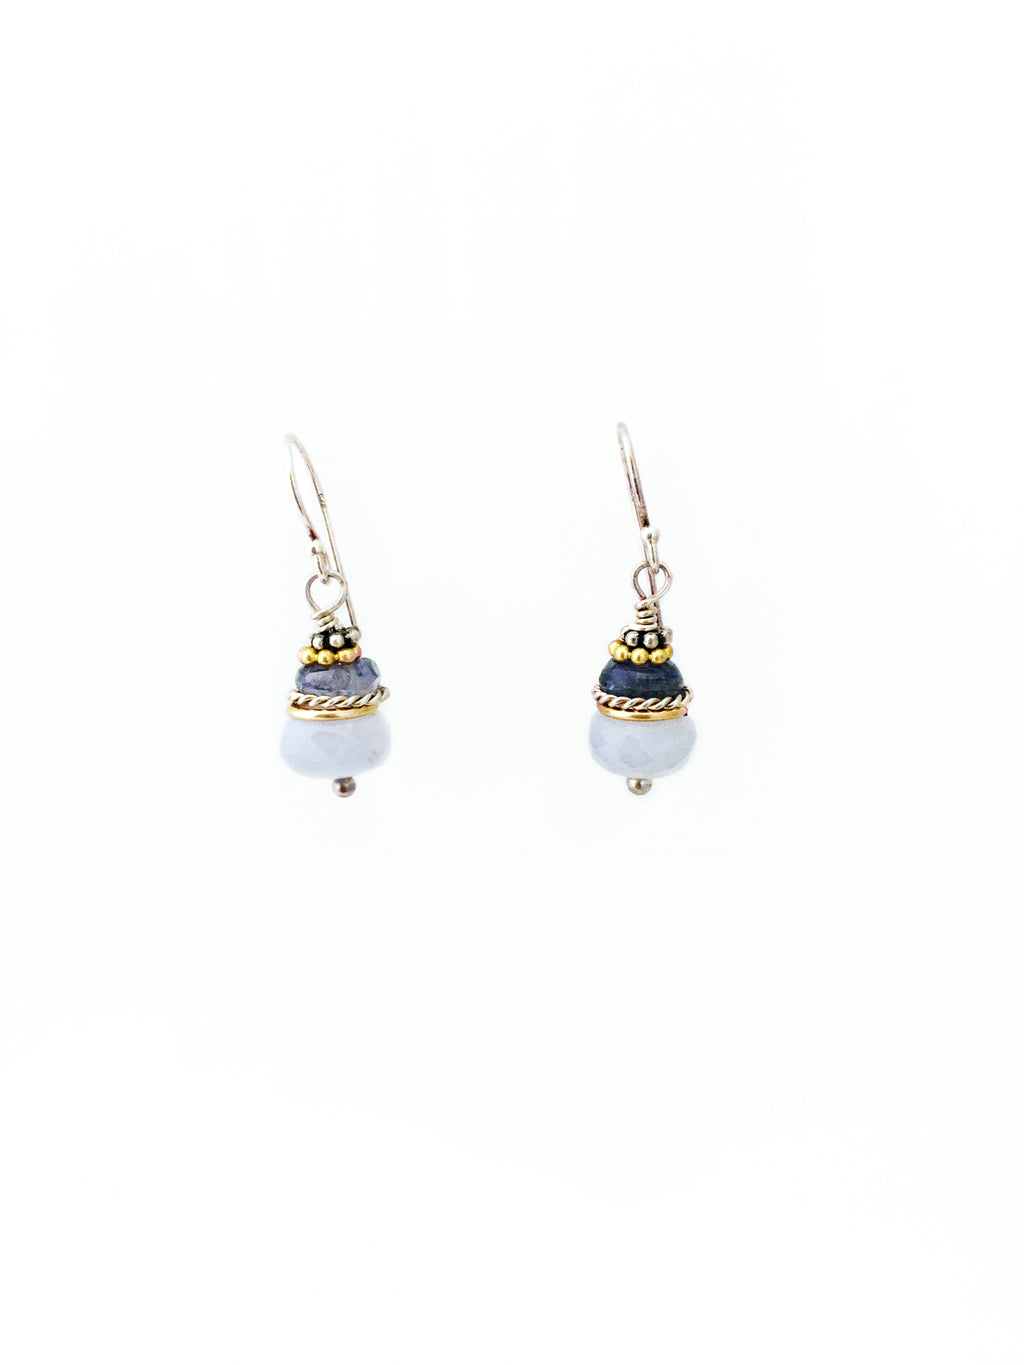 Chalcedony, Tanzanite, Gold Fill, Sterling Silver Earrings